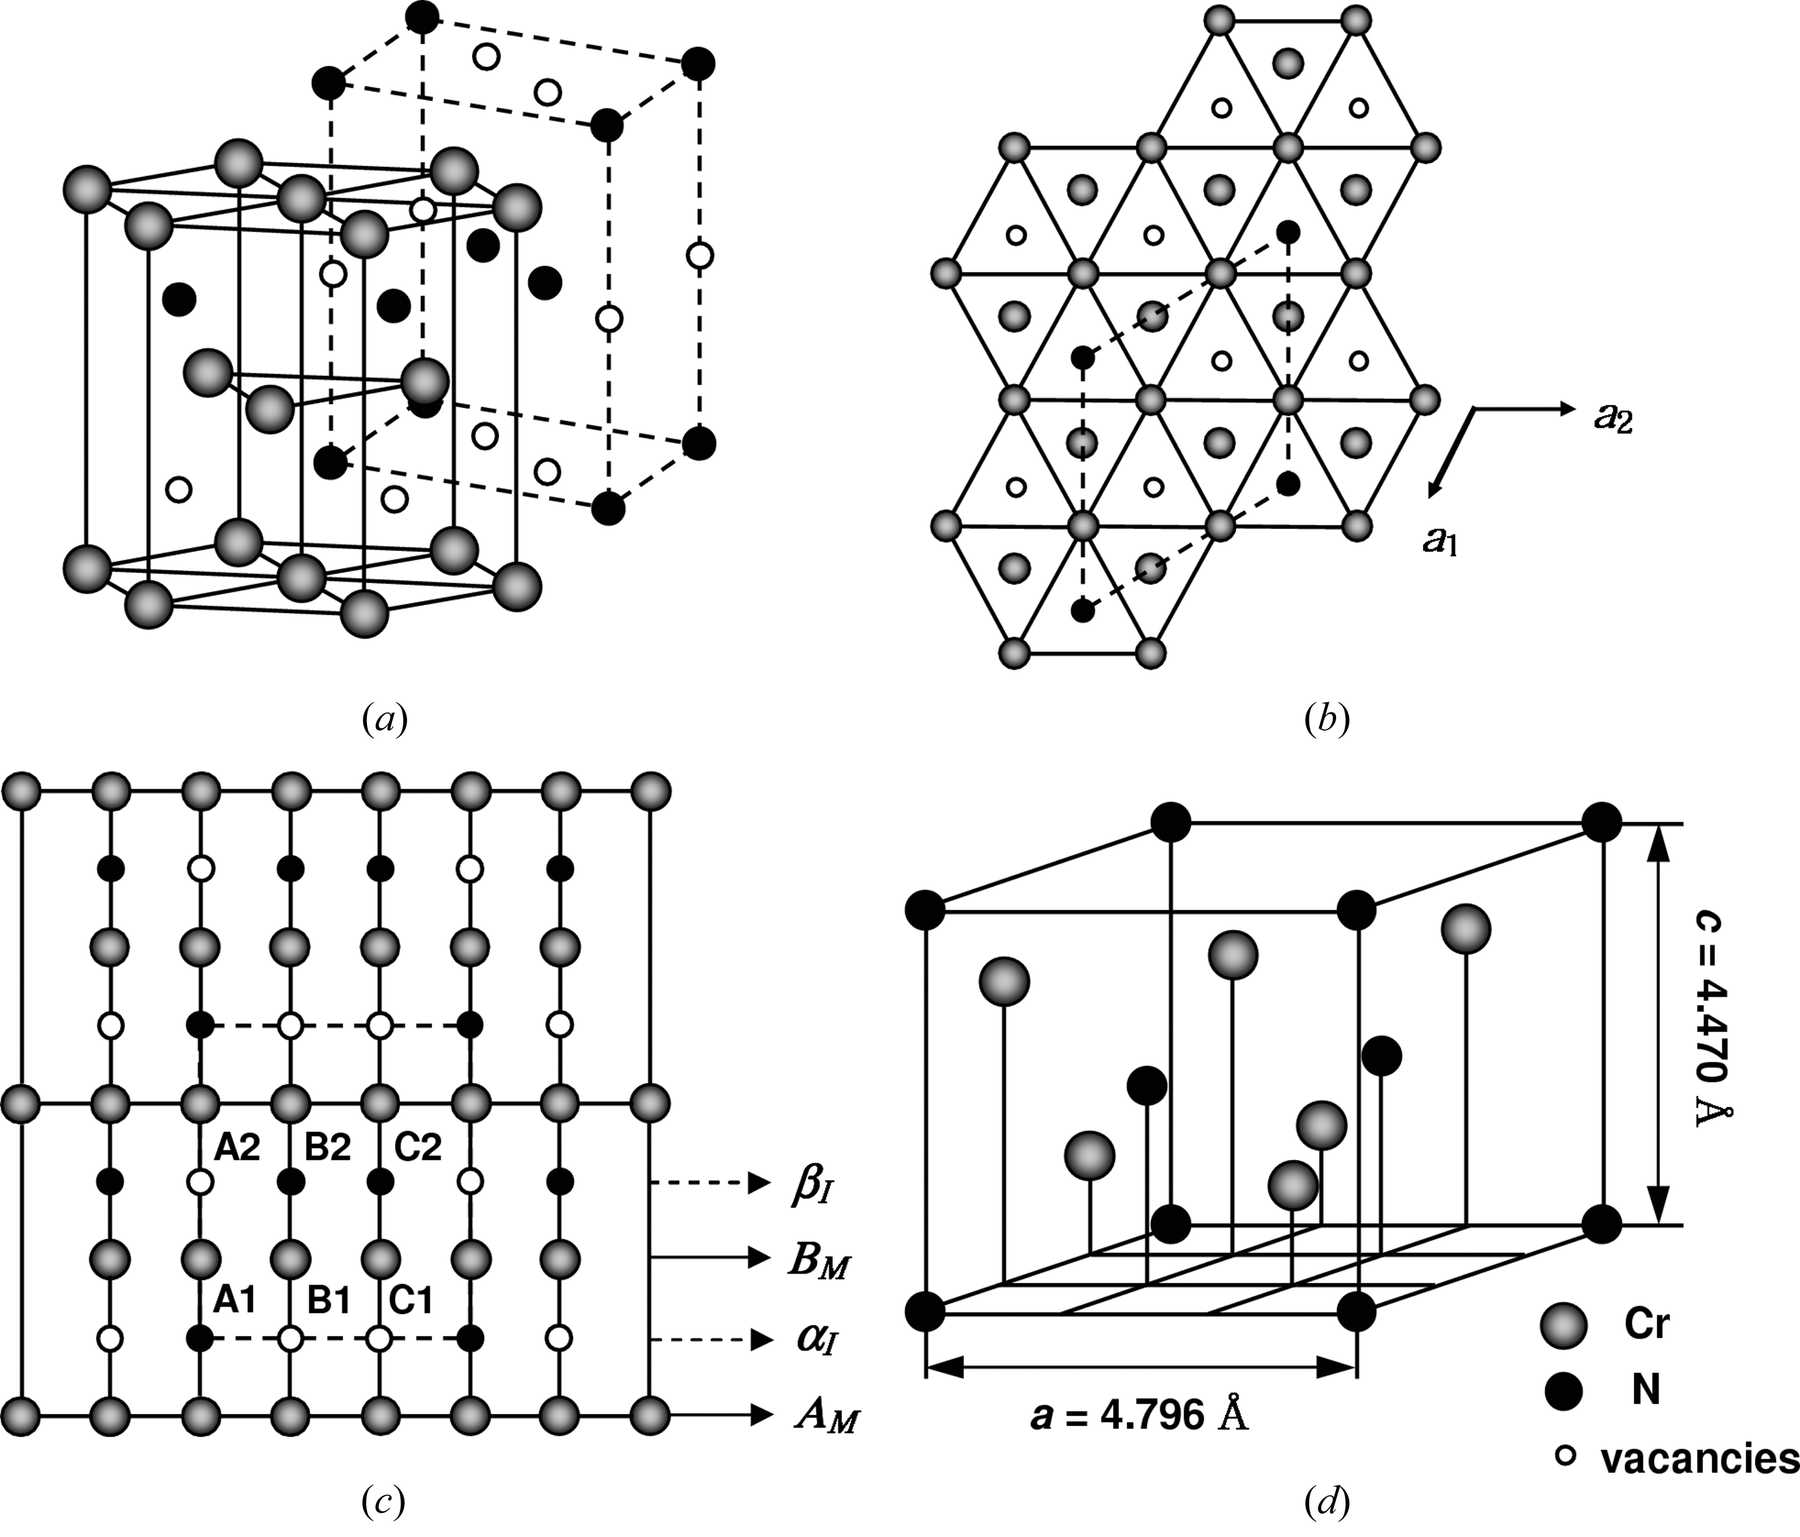 Iucr On The Crystal Structure Of Cr 2 N Precipitates In High Nitrogen Austenitic Stainless Steel